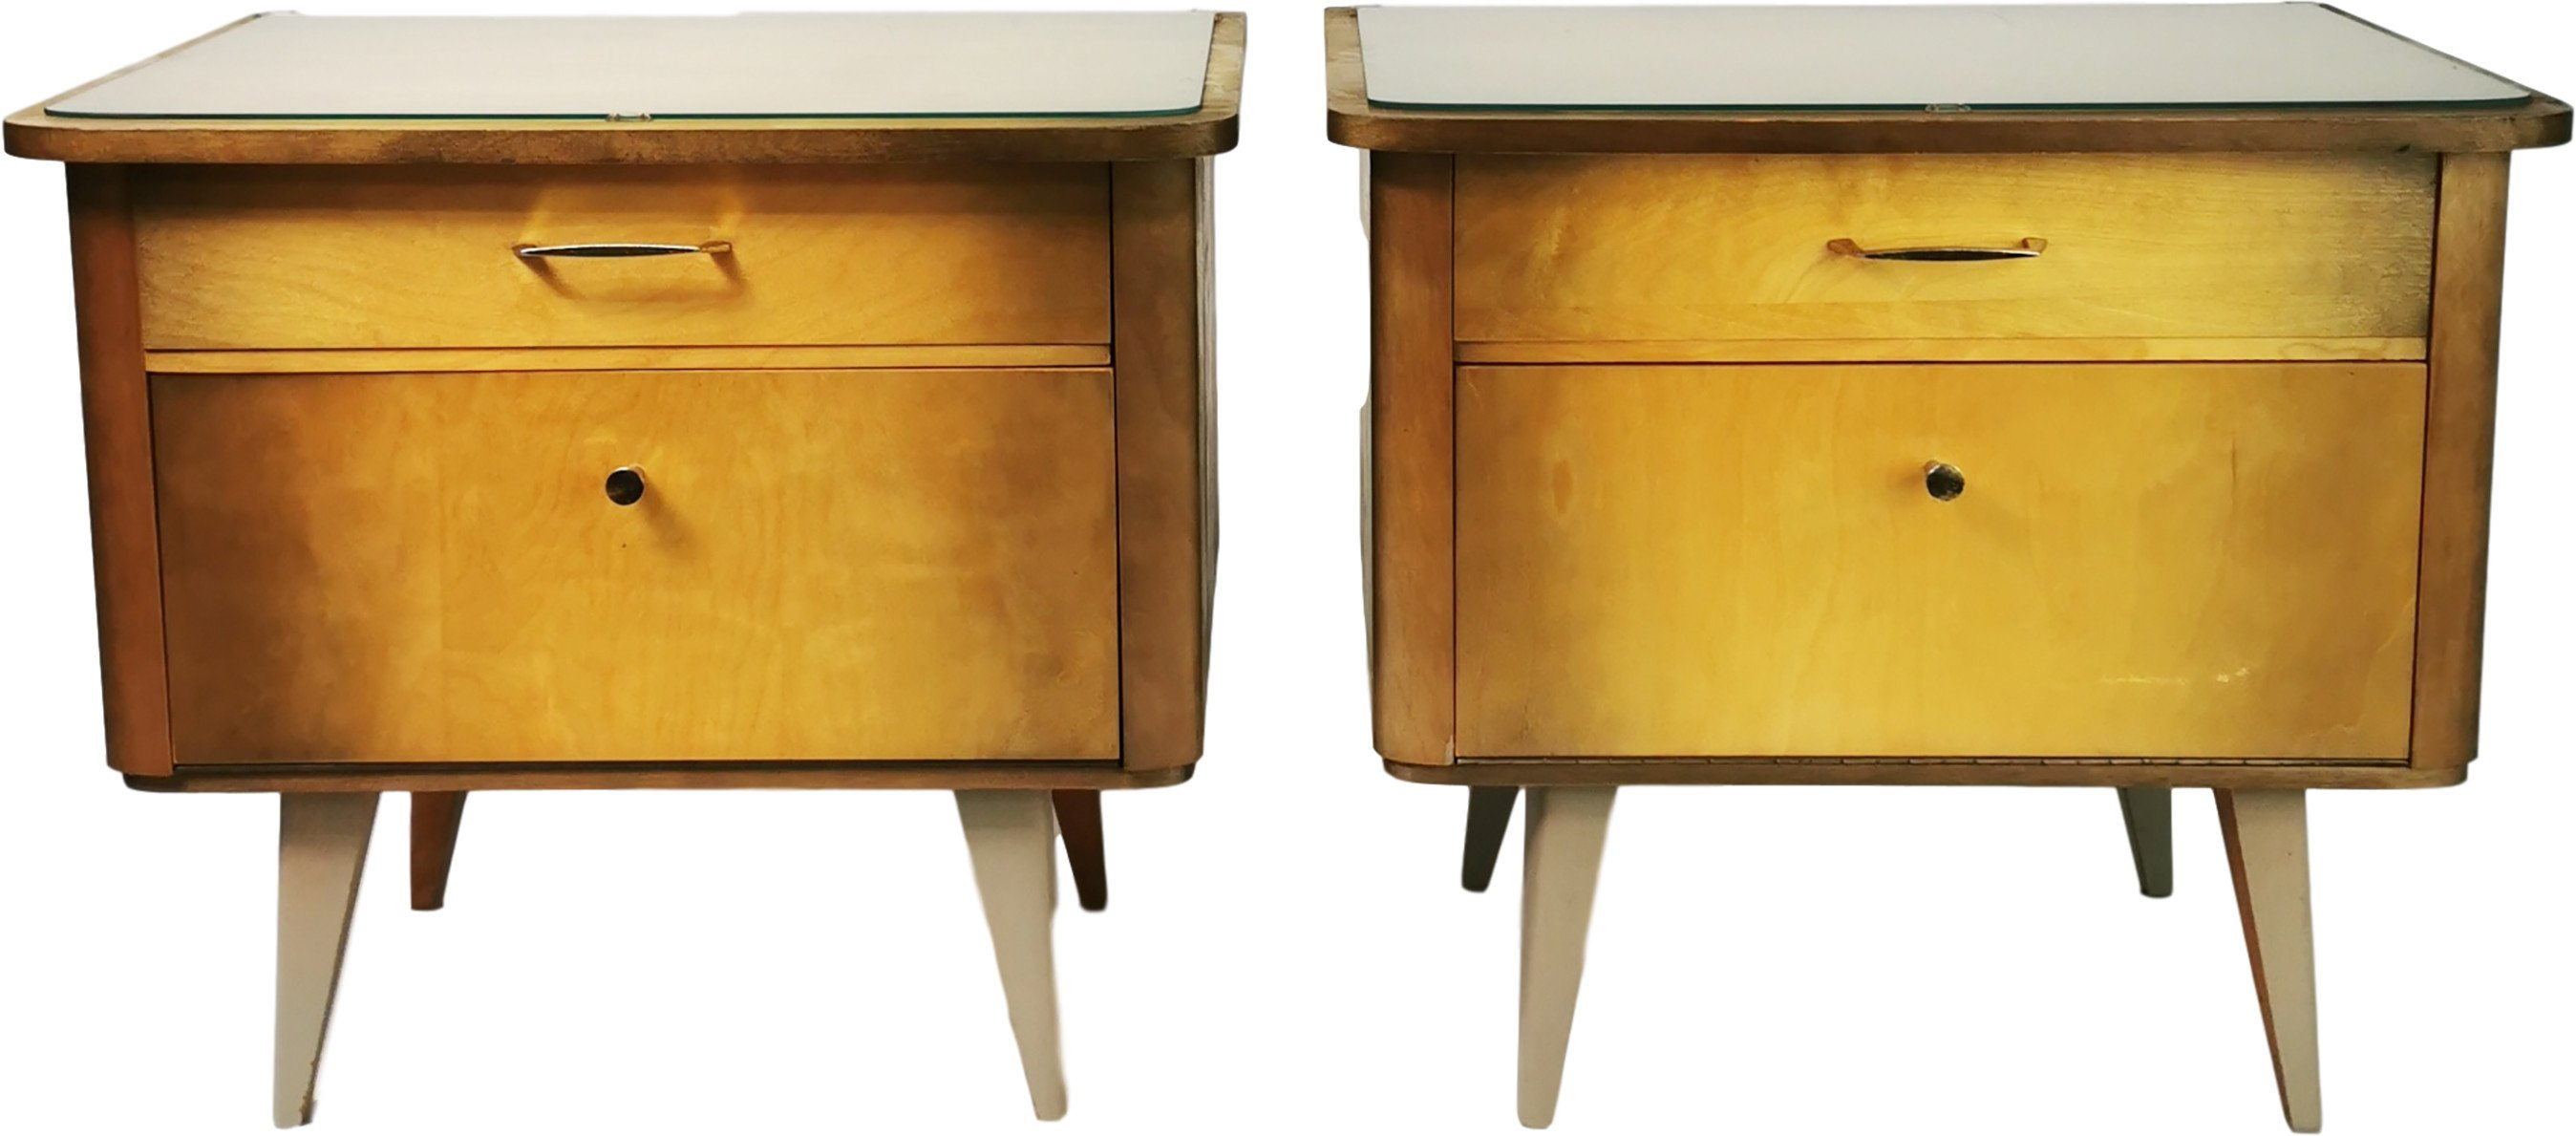 Pair of Nightstands, Germany, 1960s